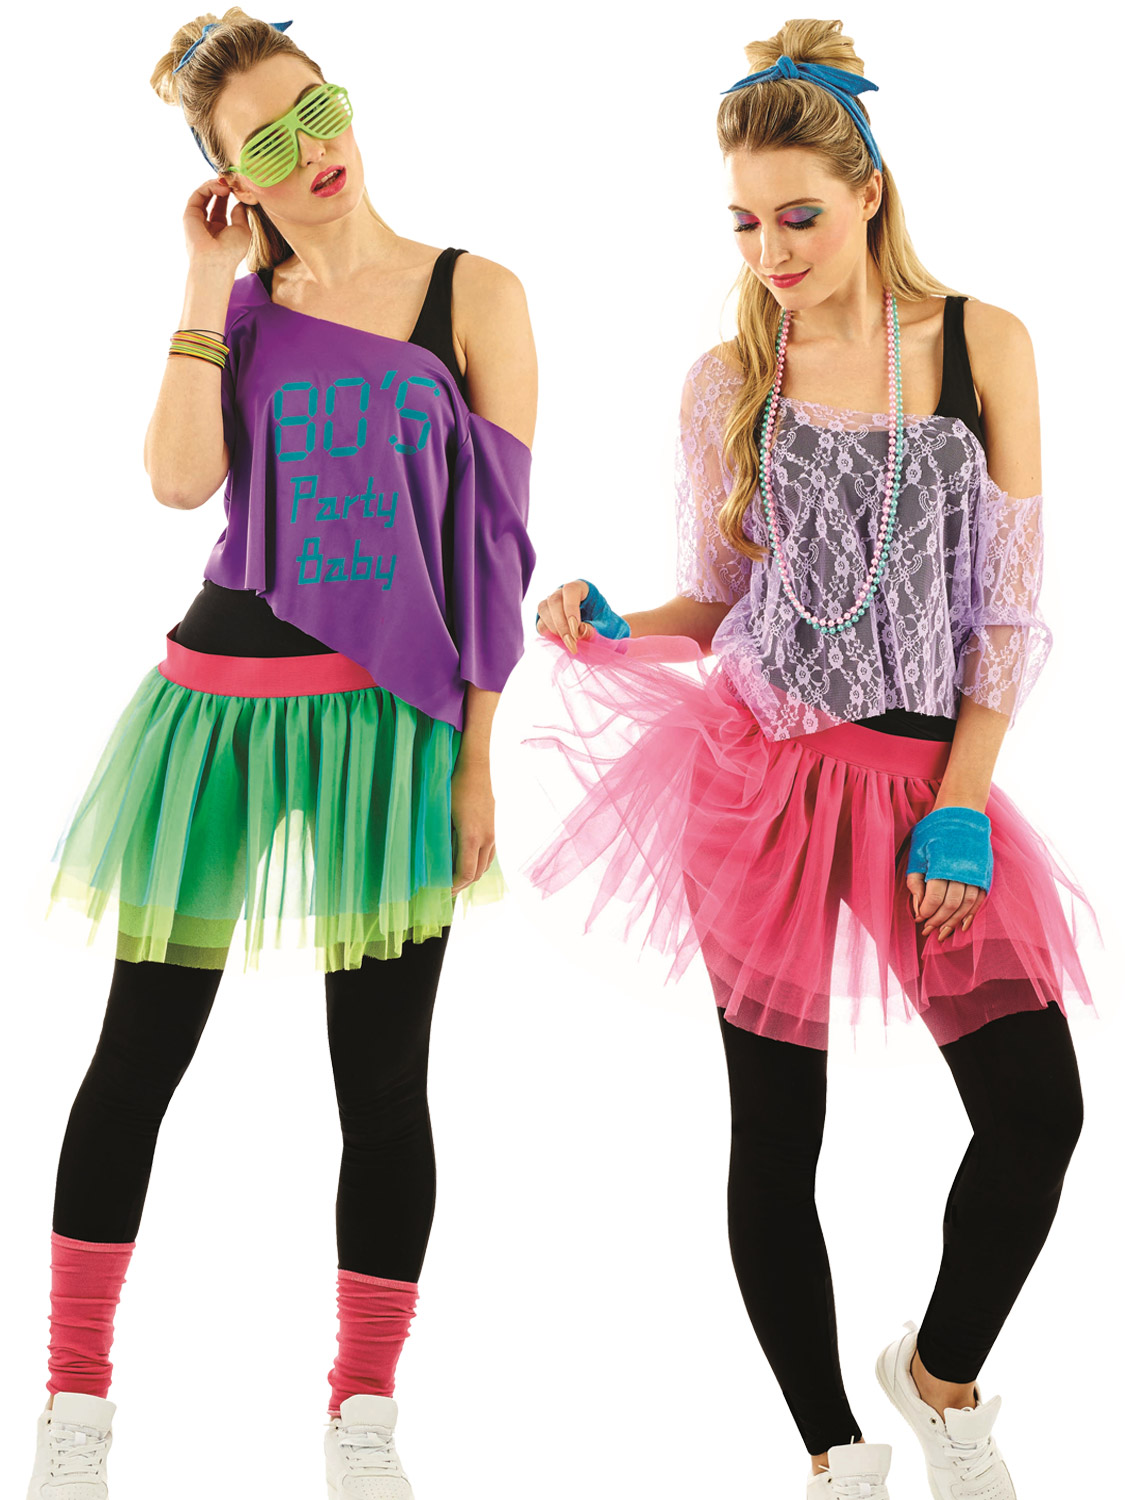 80s Vintage Clothing In The Uk Just Got Easier: Ladies 1980s Tutu Kit Adults Neon Disco Fancy Dress Womens